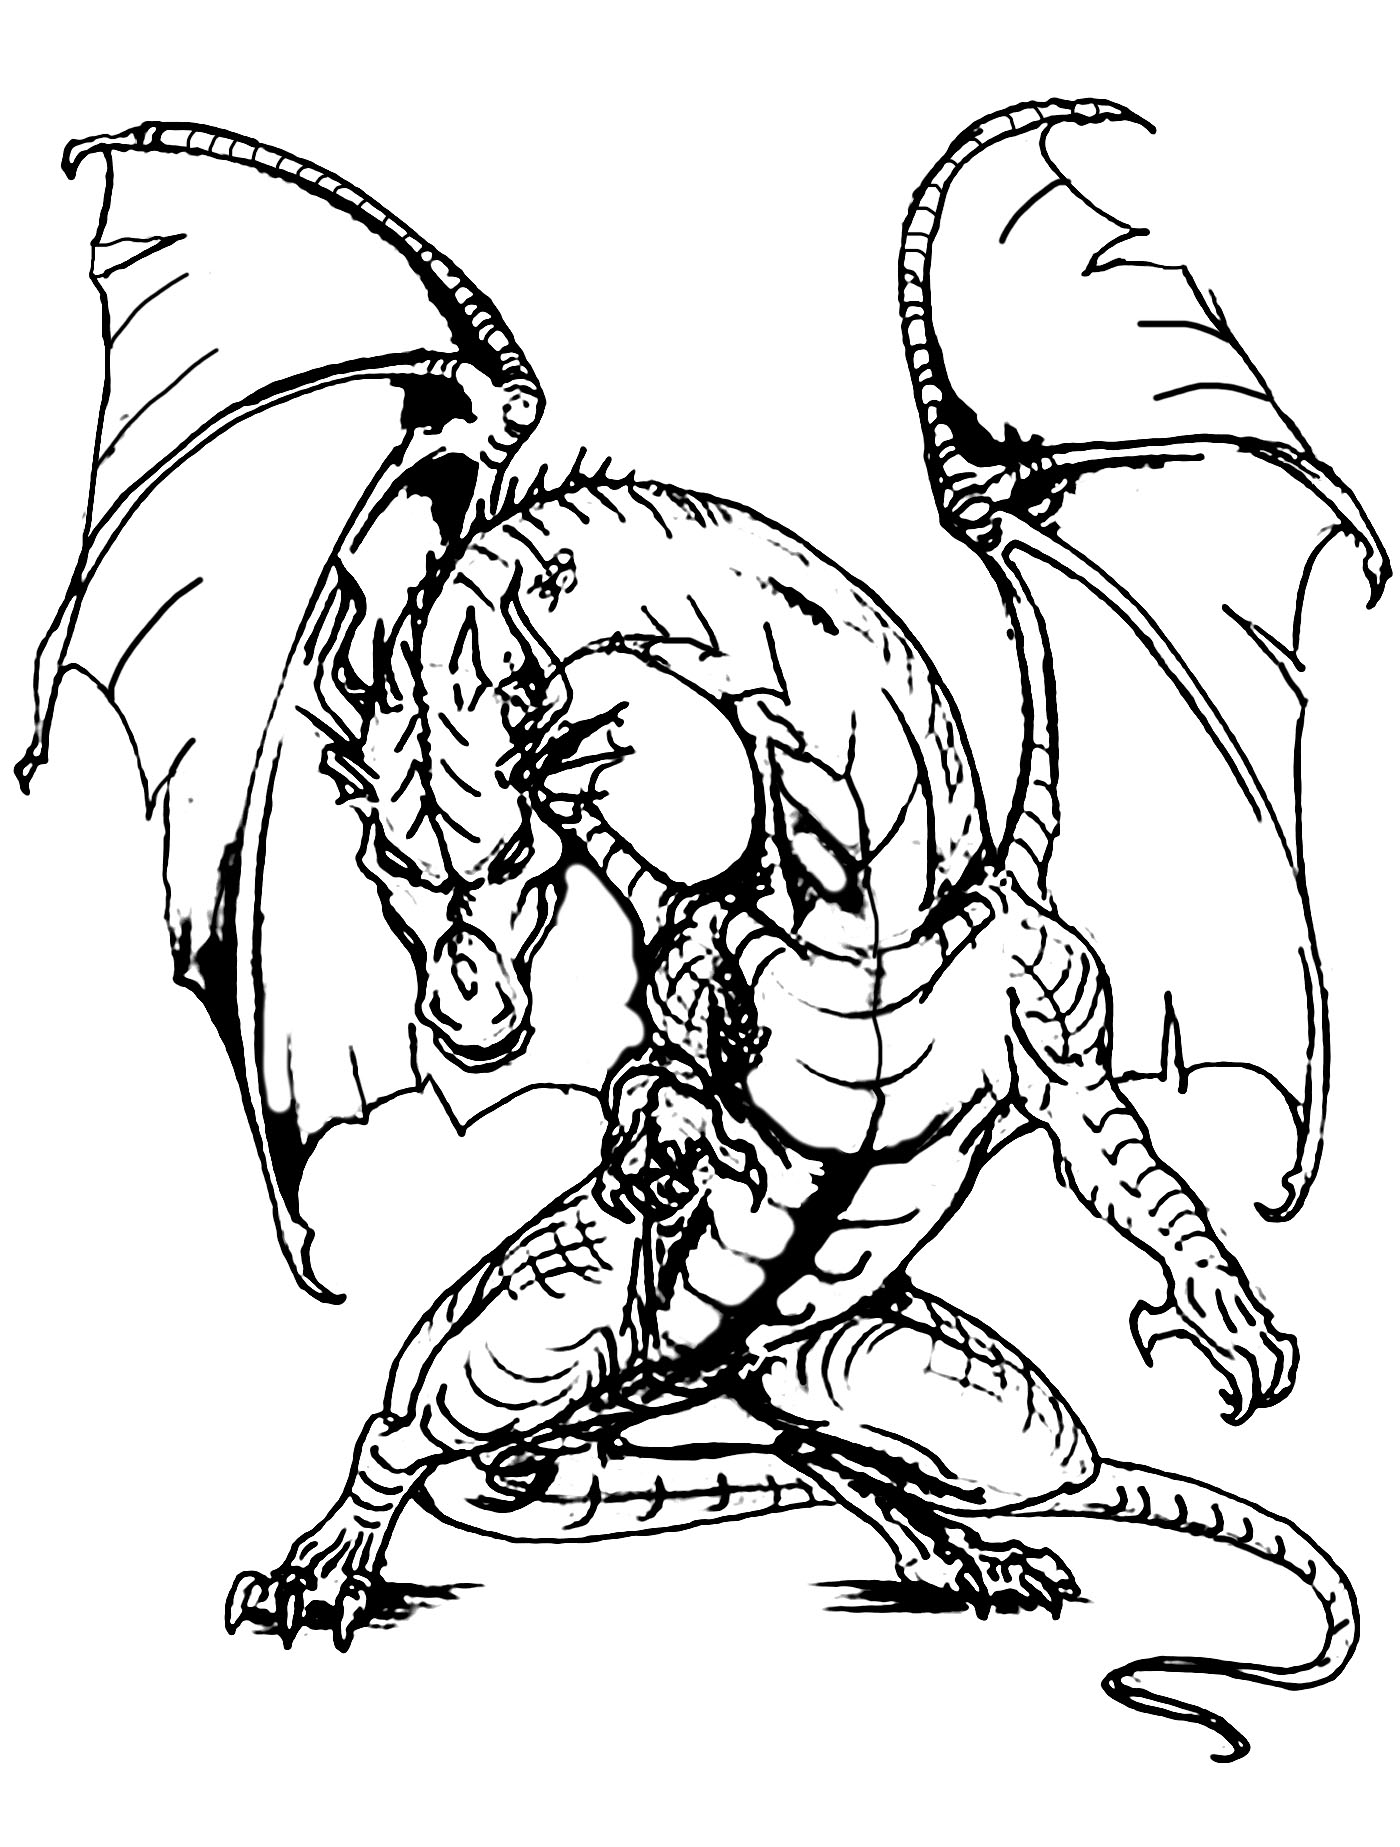 Myths Legends Coloring Pages For Adults Justcolor